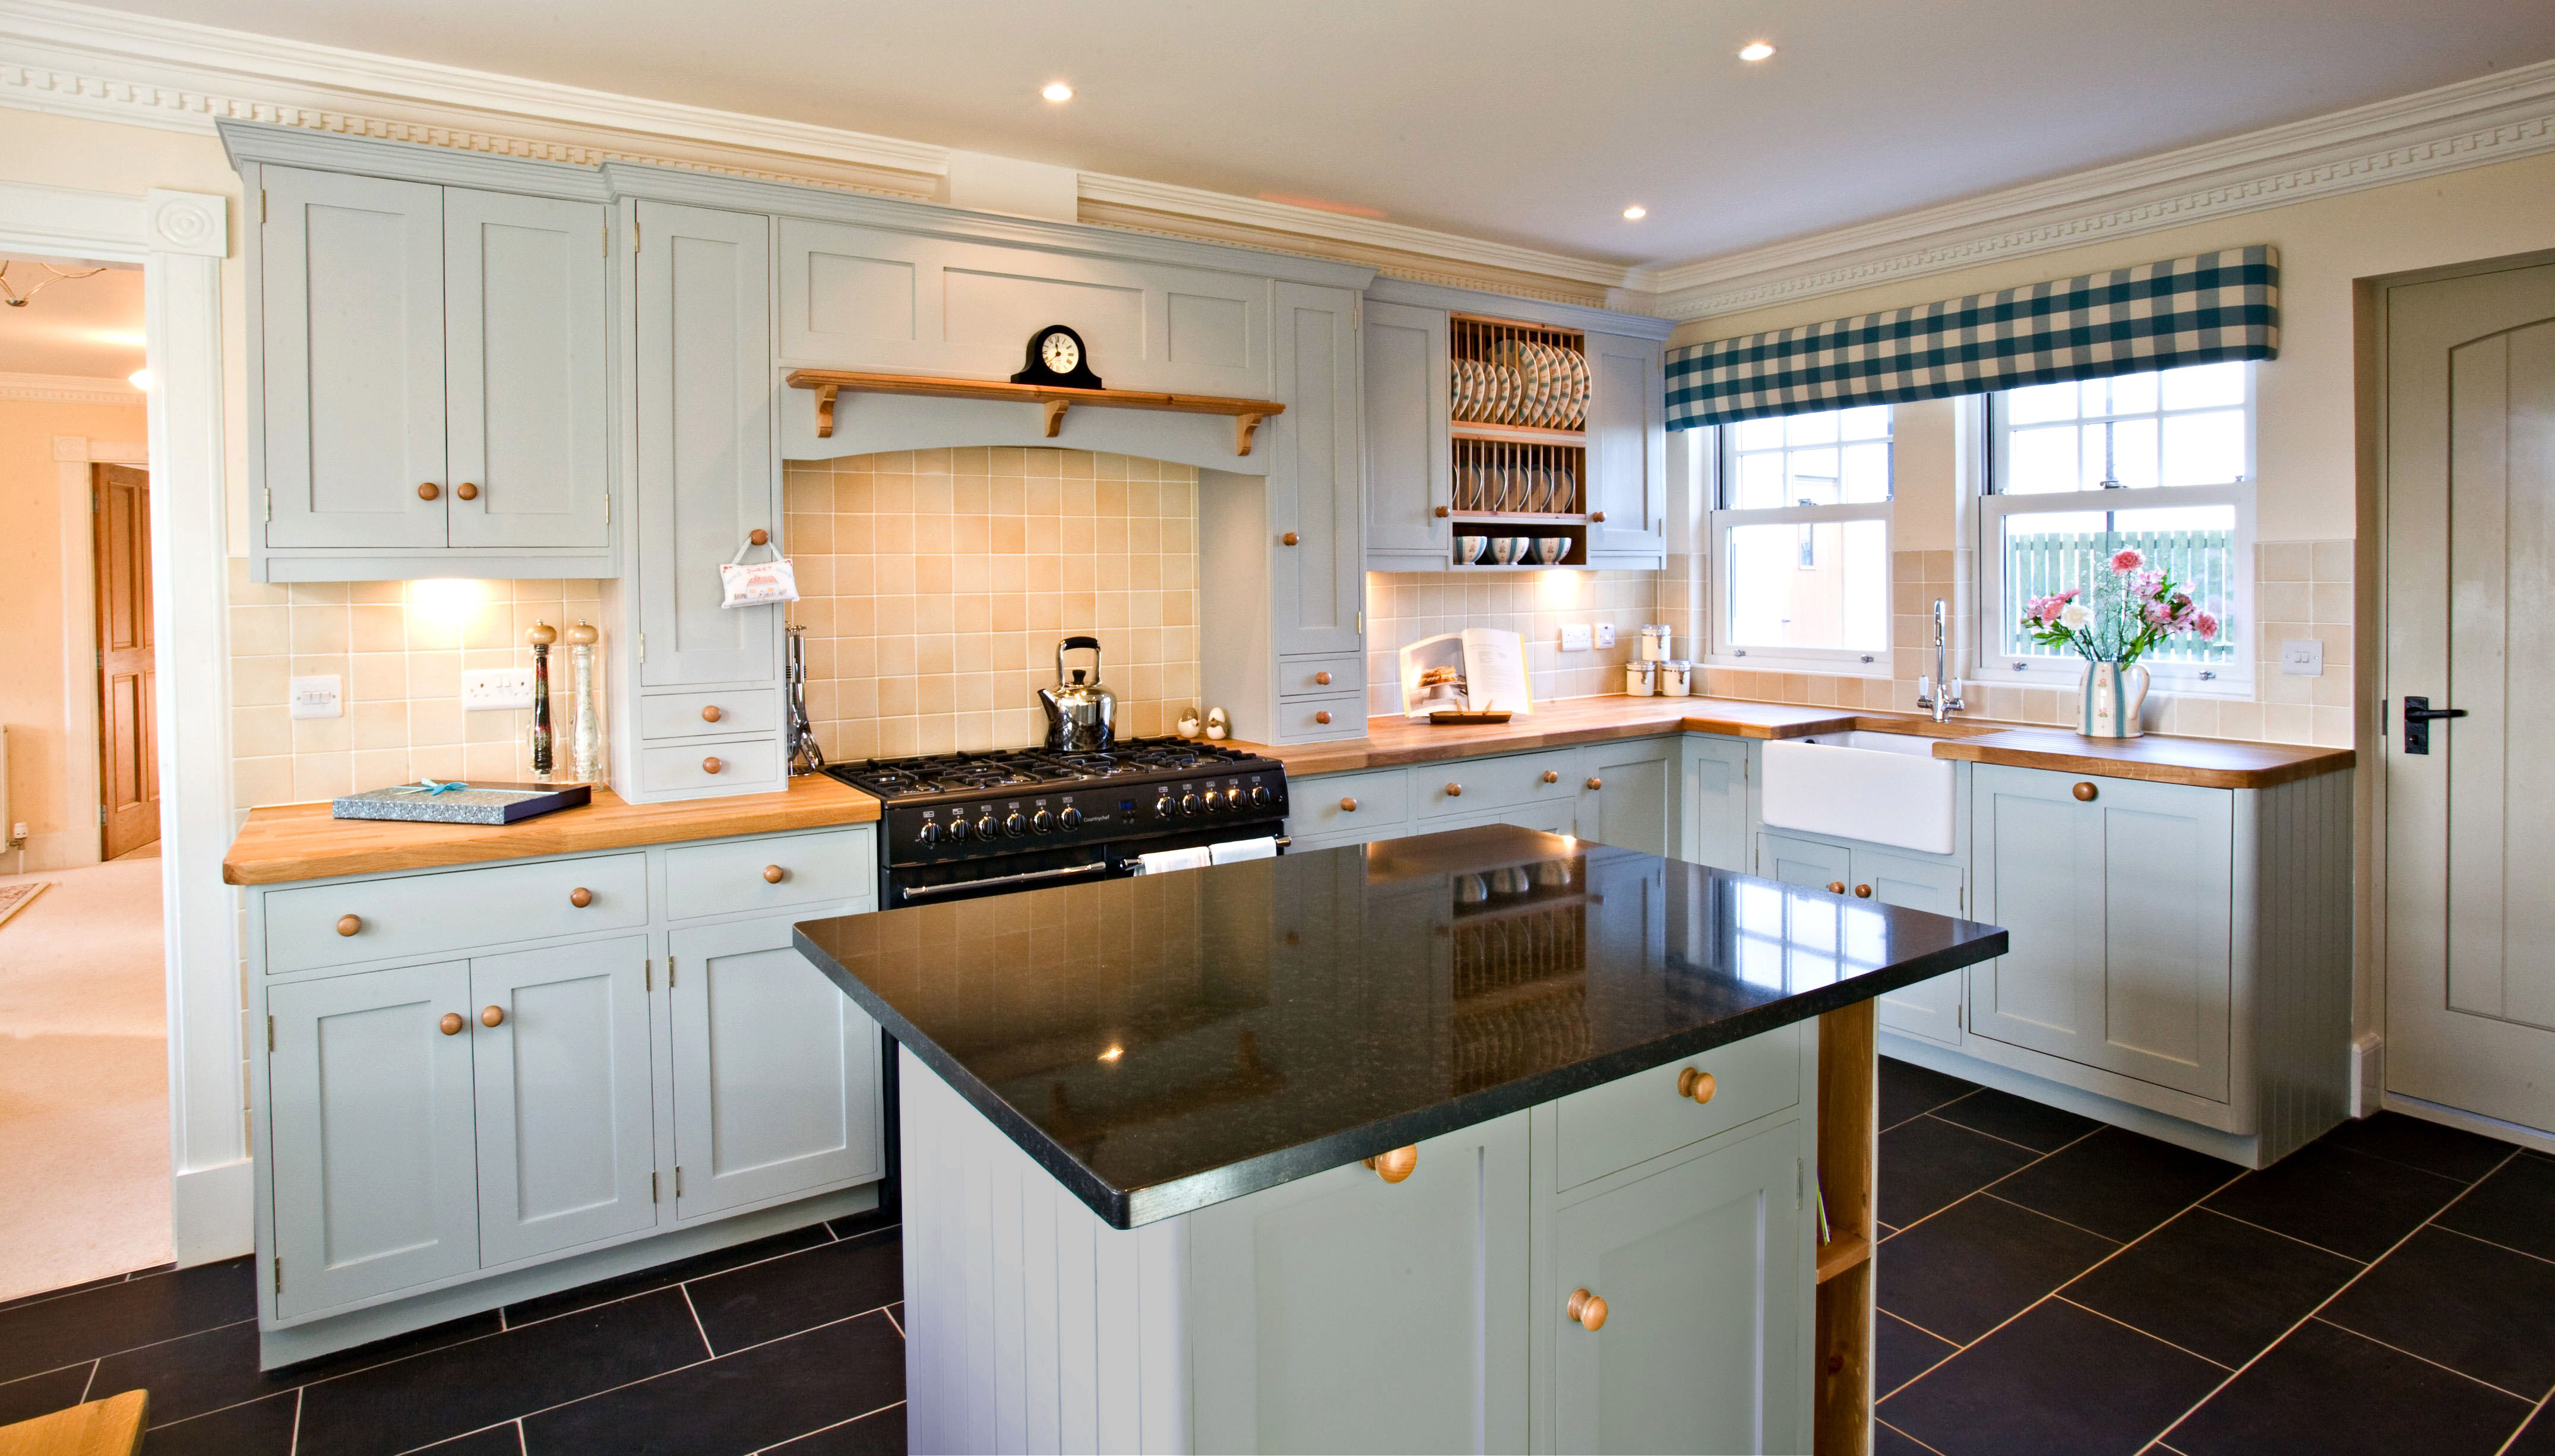 kitchens design All our kitchens are bespoke and built to the exact size and shape to fit the shape of your room perfectly